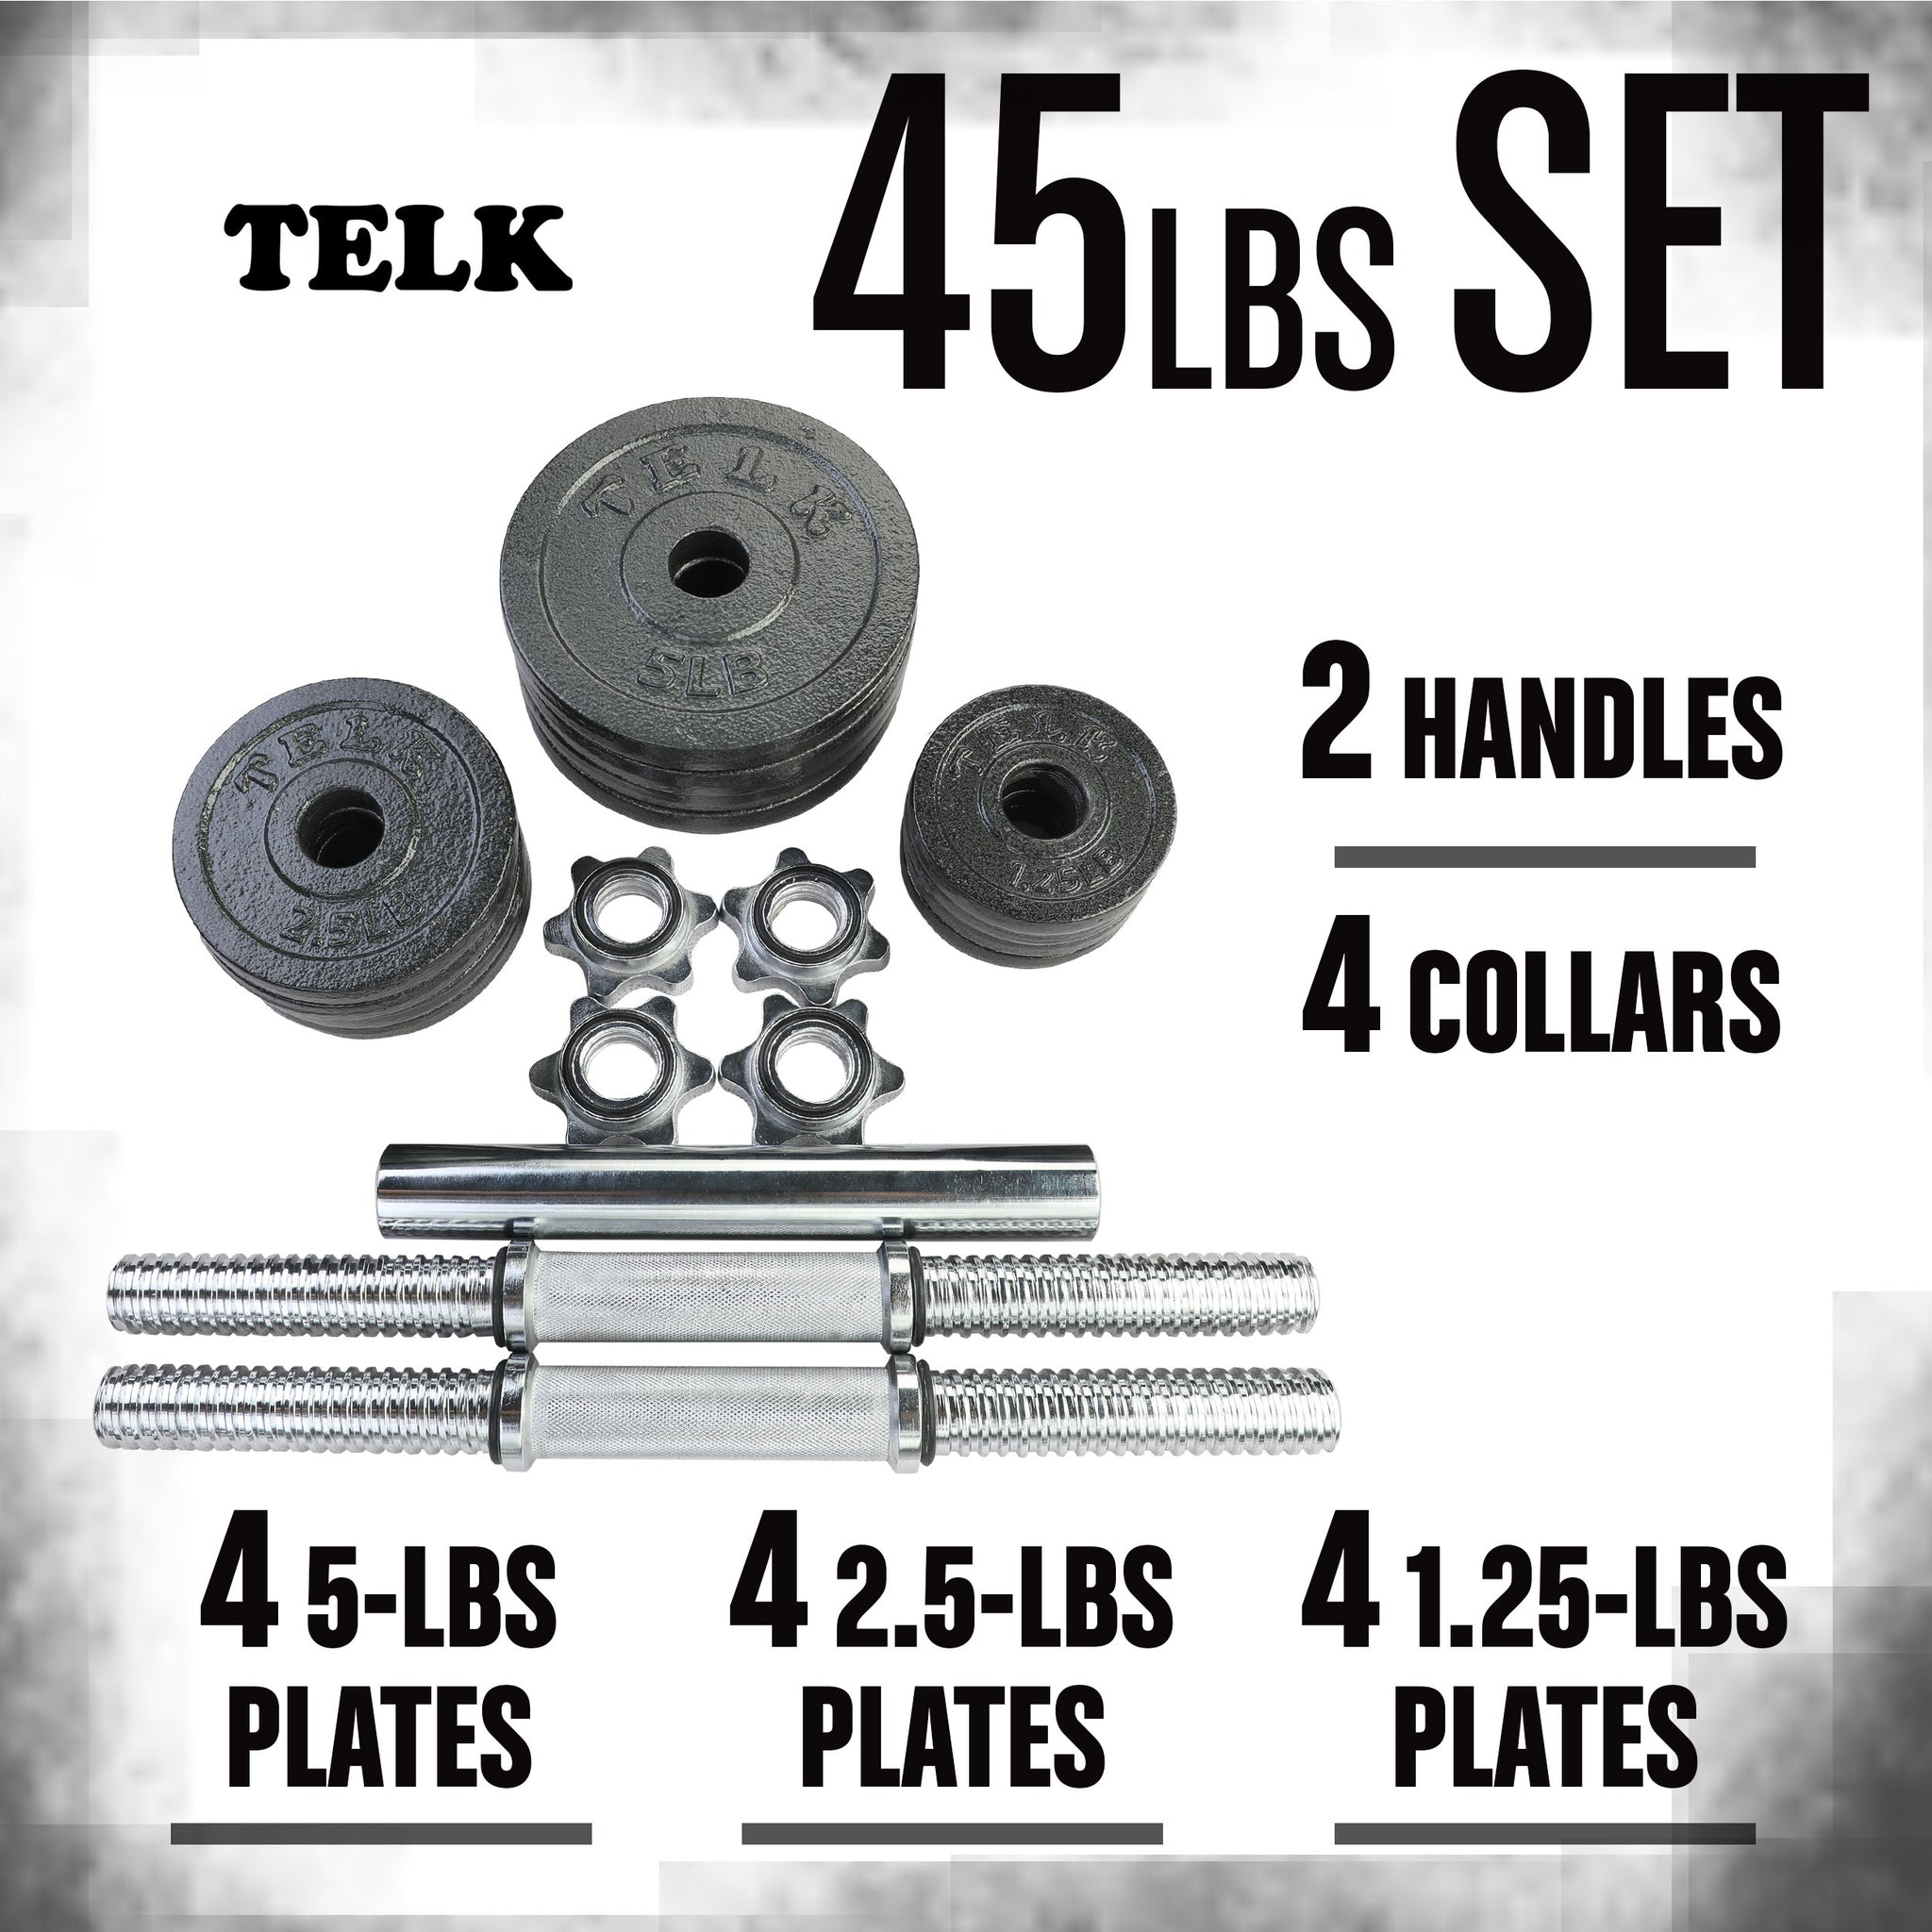 Adjustable Dumbbells 45 lbs + Bar